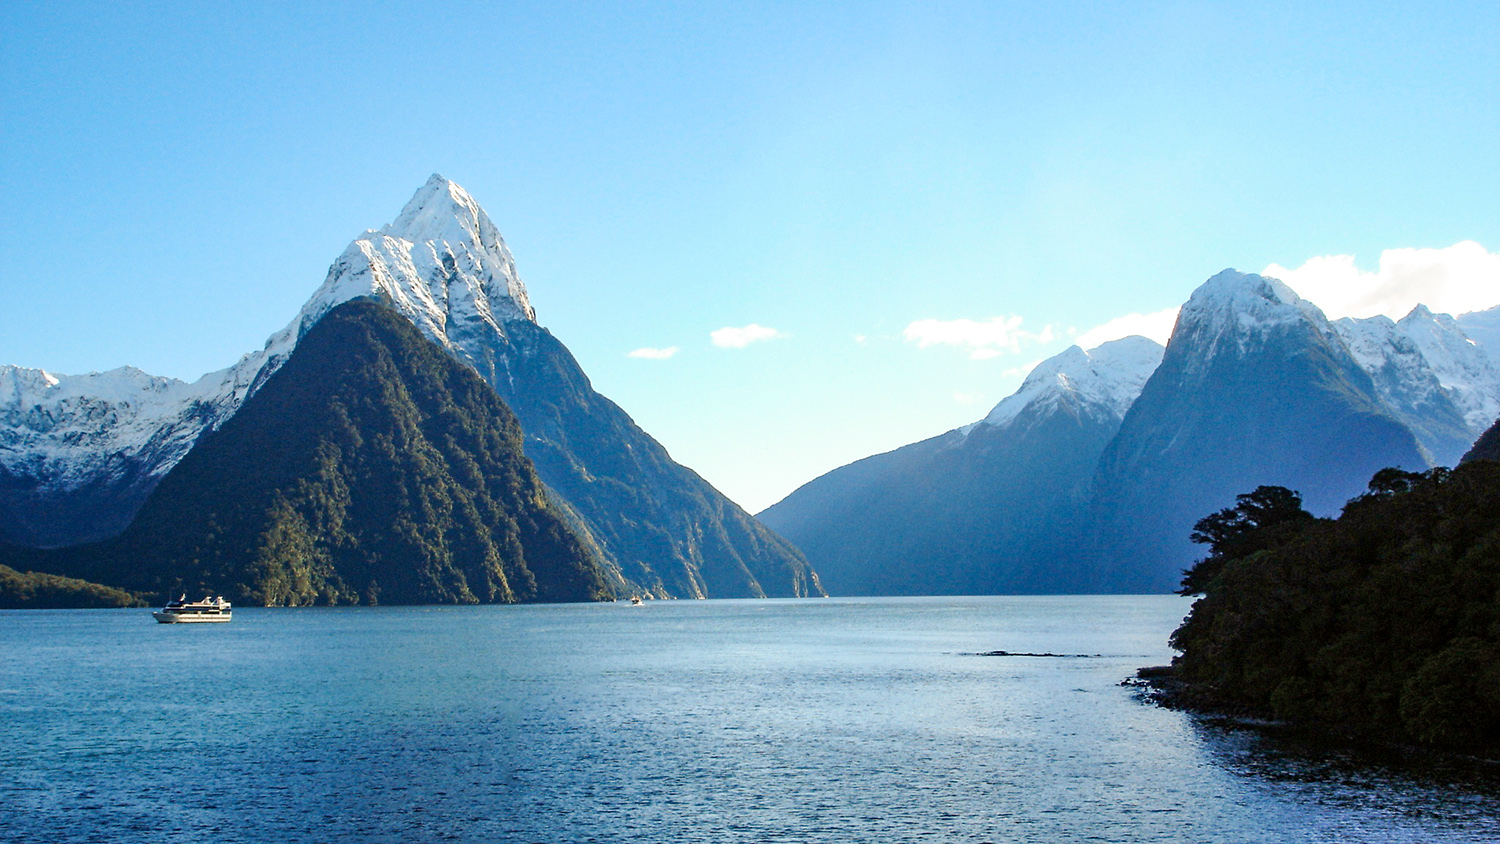 New Zealand Milford Sound Lakes and Mountains